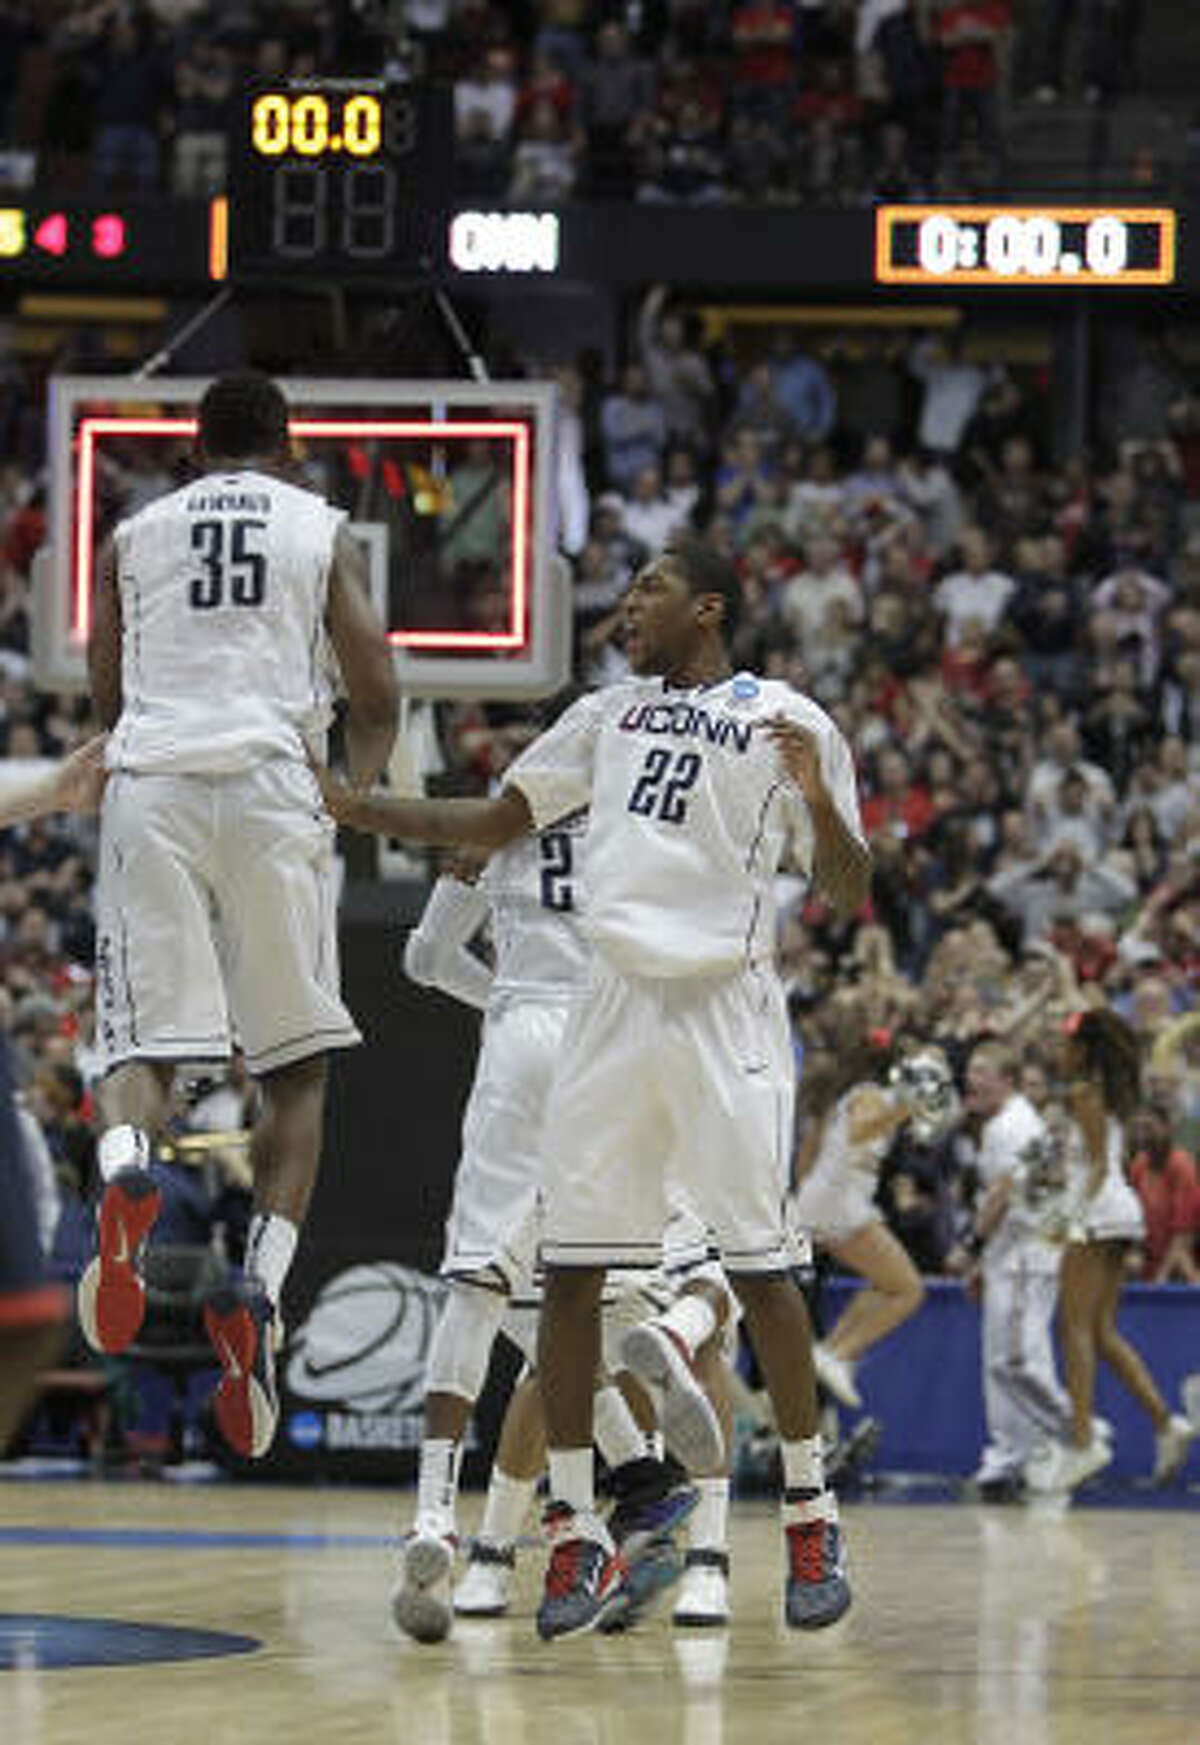 West Regional final: UConn 65, Arizona 63 Connecticut Huskies team celebrates together on the court after defeating the Arizona Wildcats 65-63 in the NCAA West Regional Final. UConn advances to the Final Four in Houston.